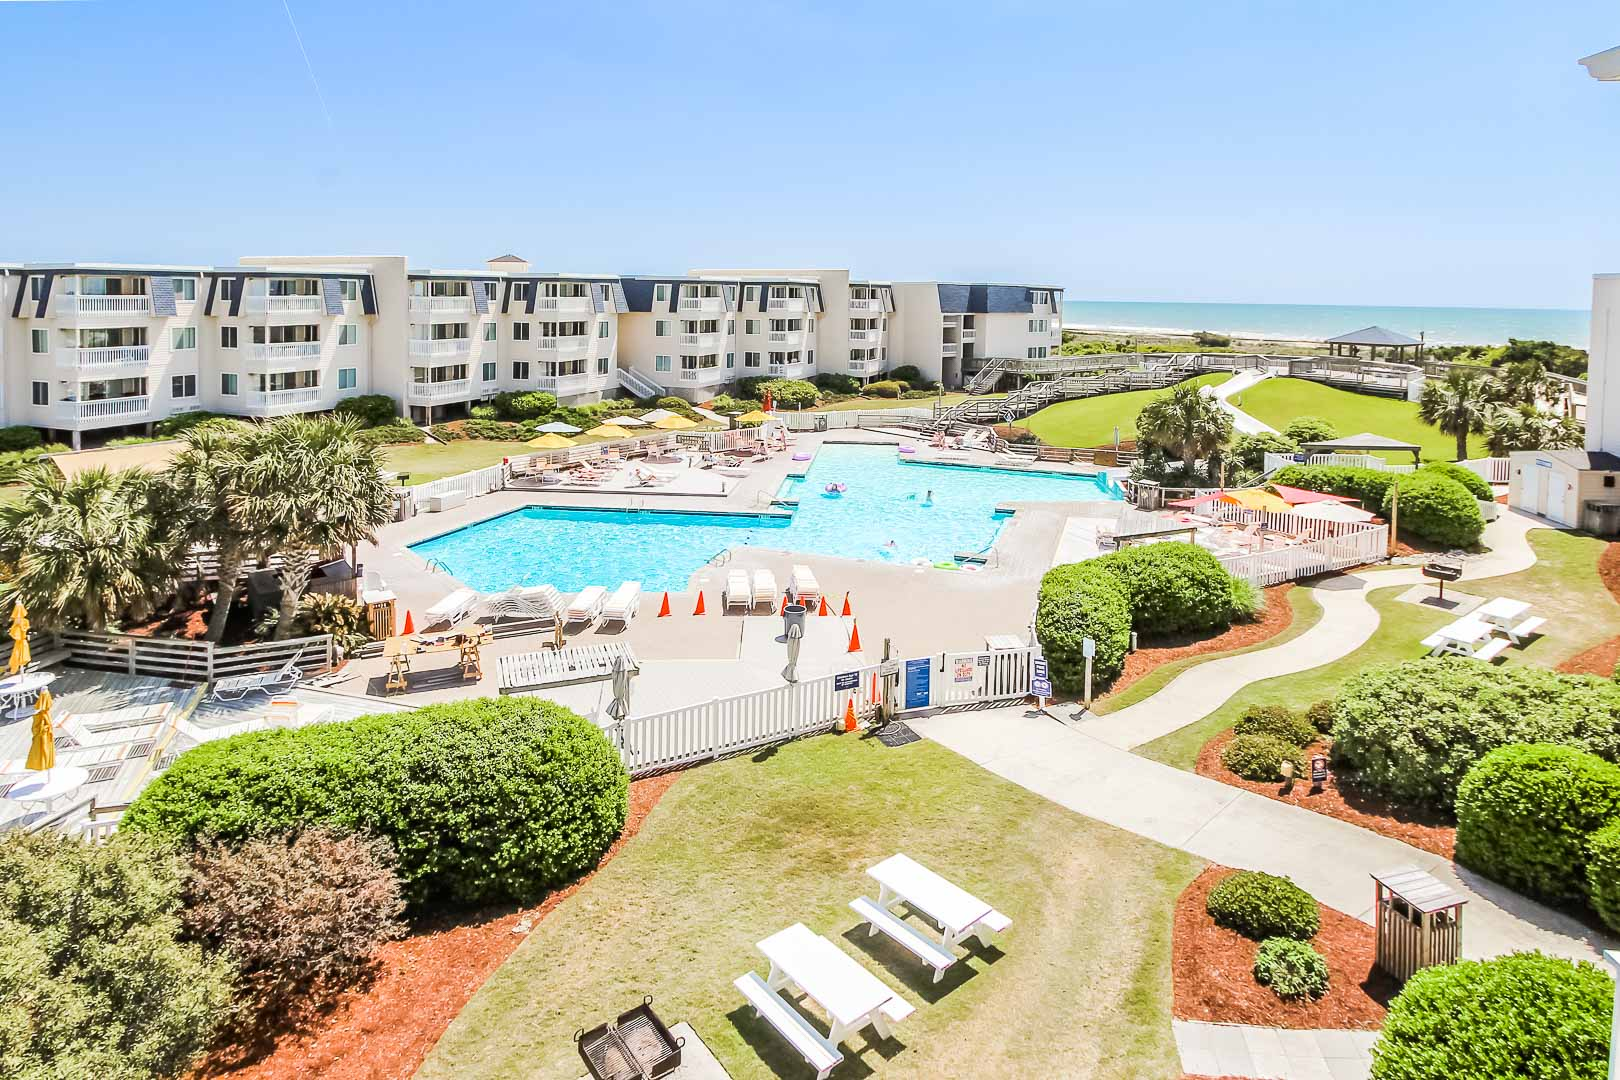 A lovely resort view of at VRI's A Place at the Beach III in North Carolina